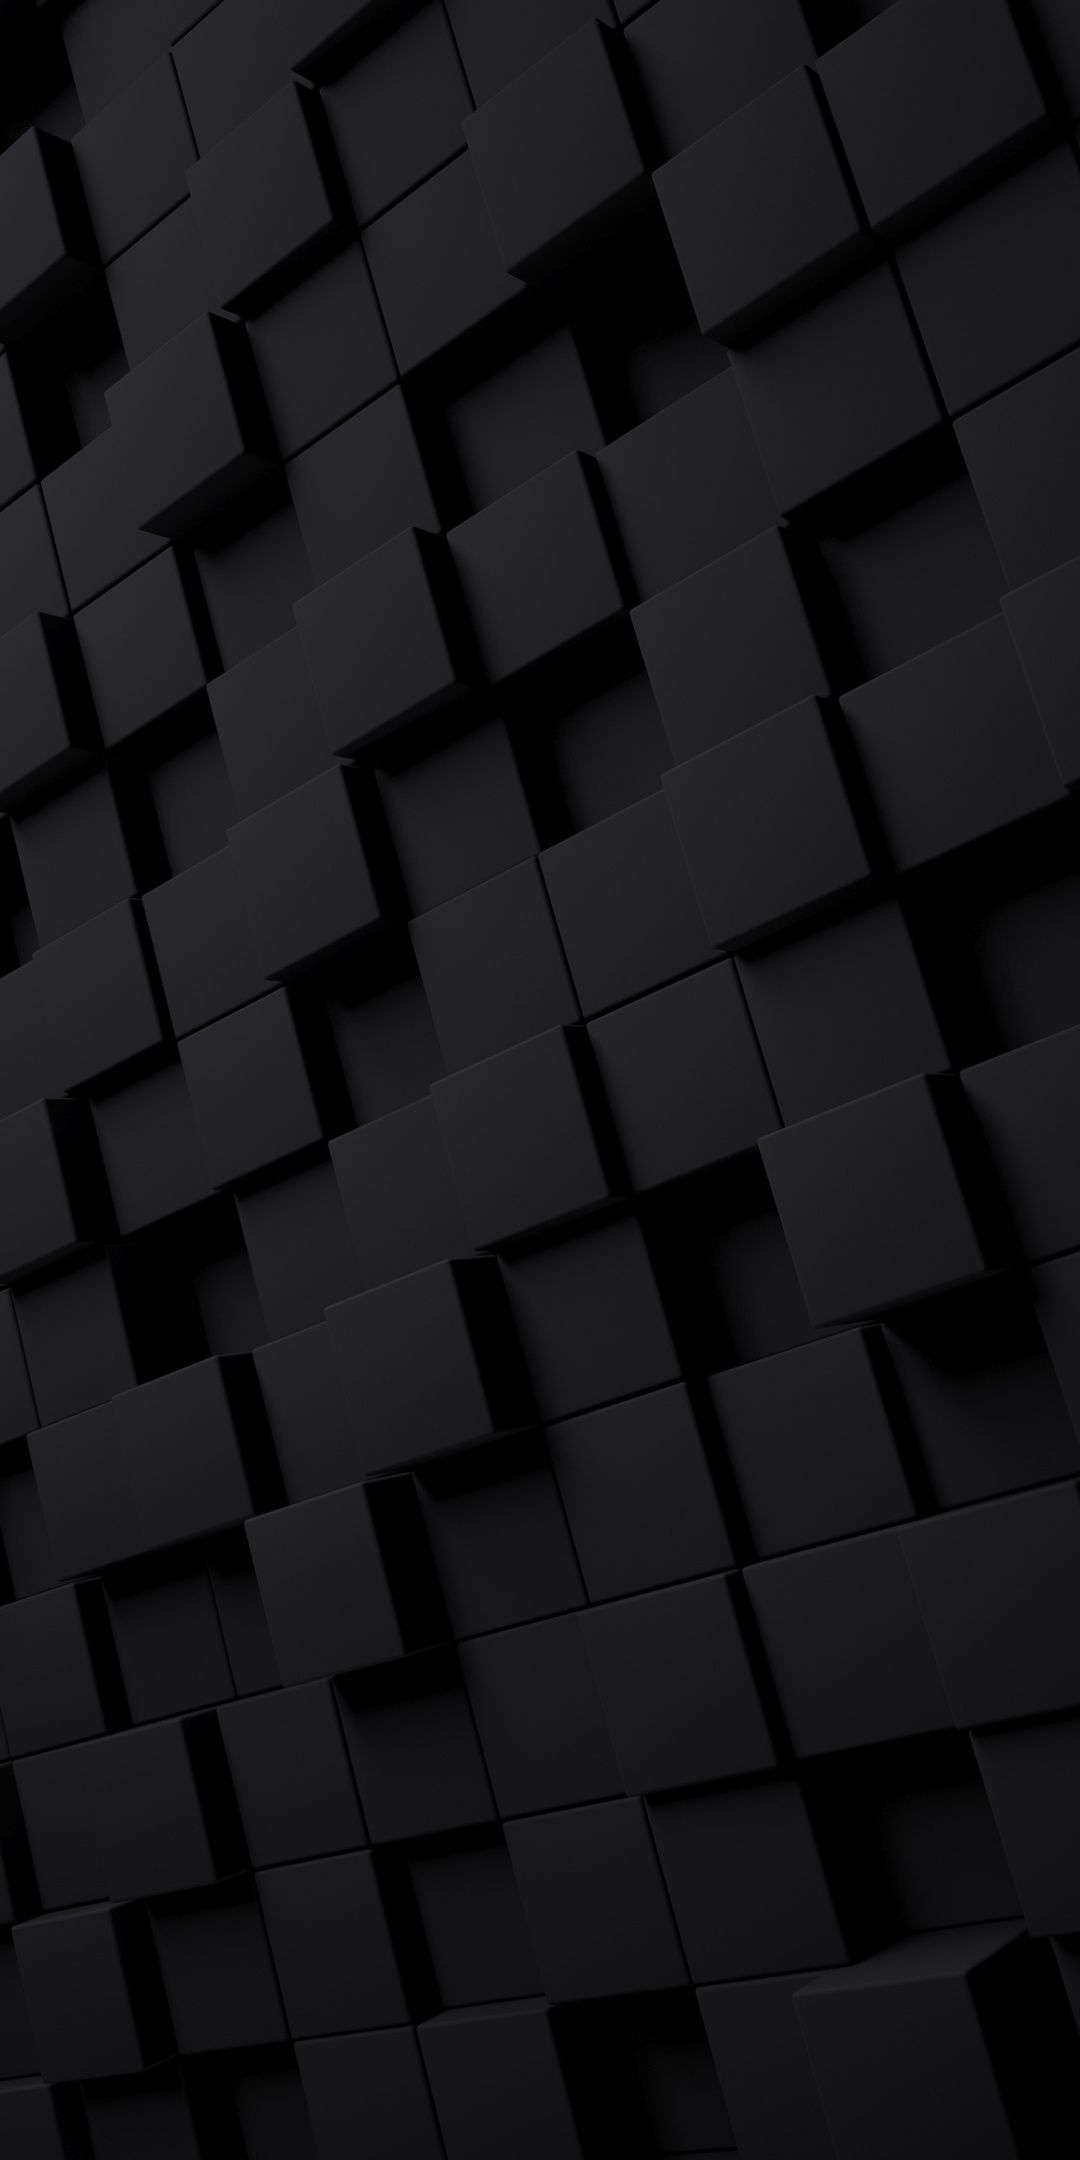 Download 1080x2160 Wallpaper Black Pattern Dark Cubes Abstract Honor 7x Honor 9 Lite Abstract Iphone Wallpaper Dark Wallpaper Iphone Black Phone Wallpaper